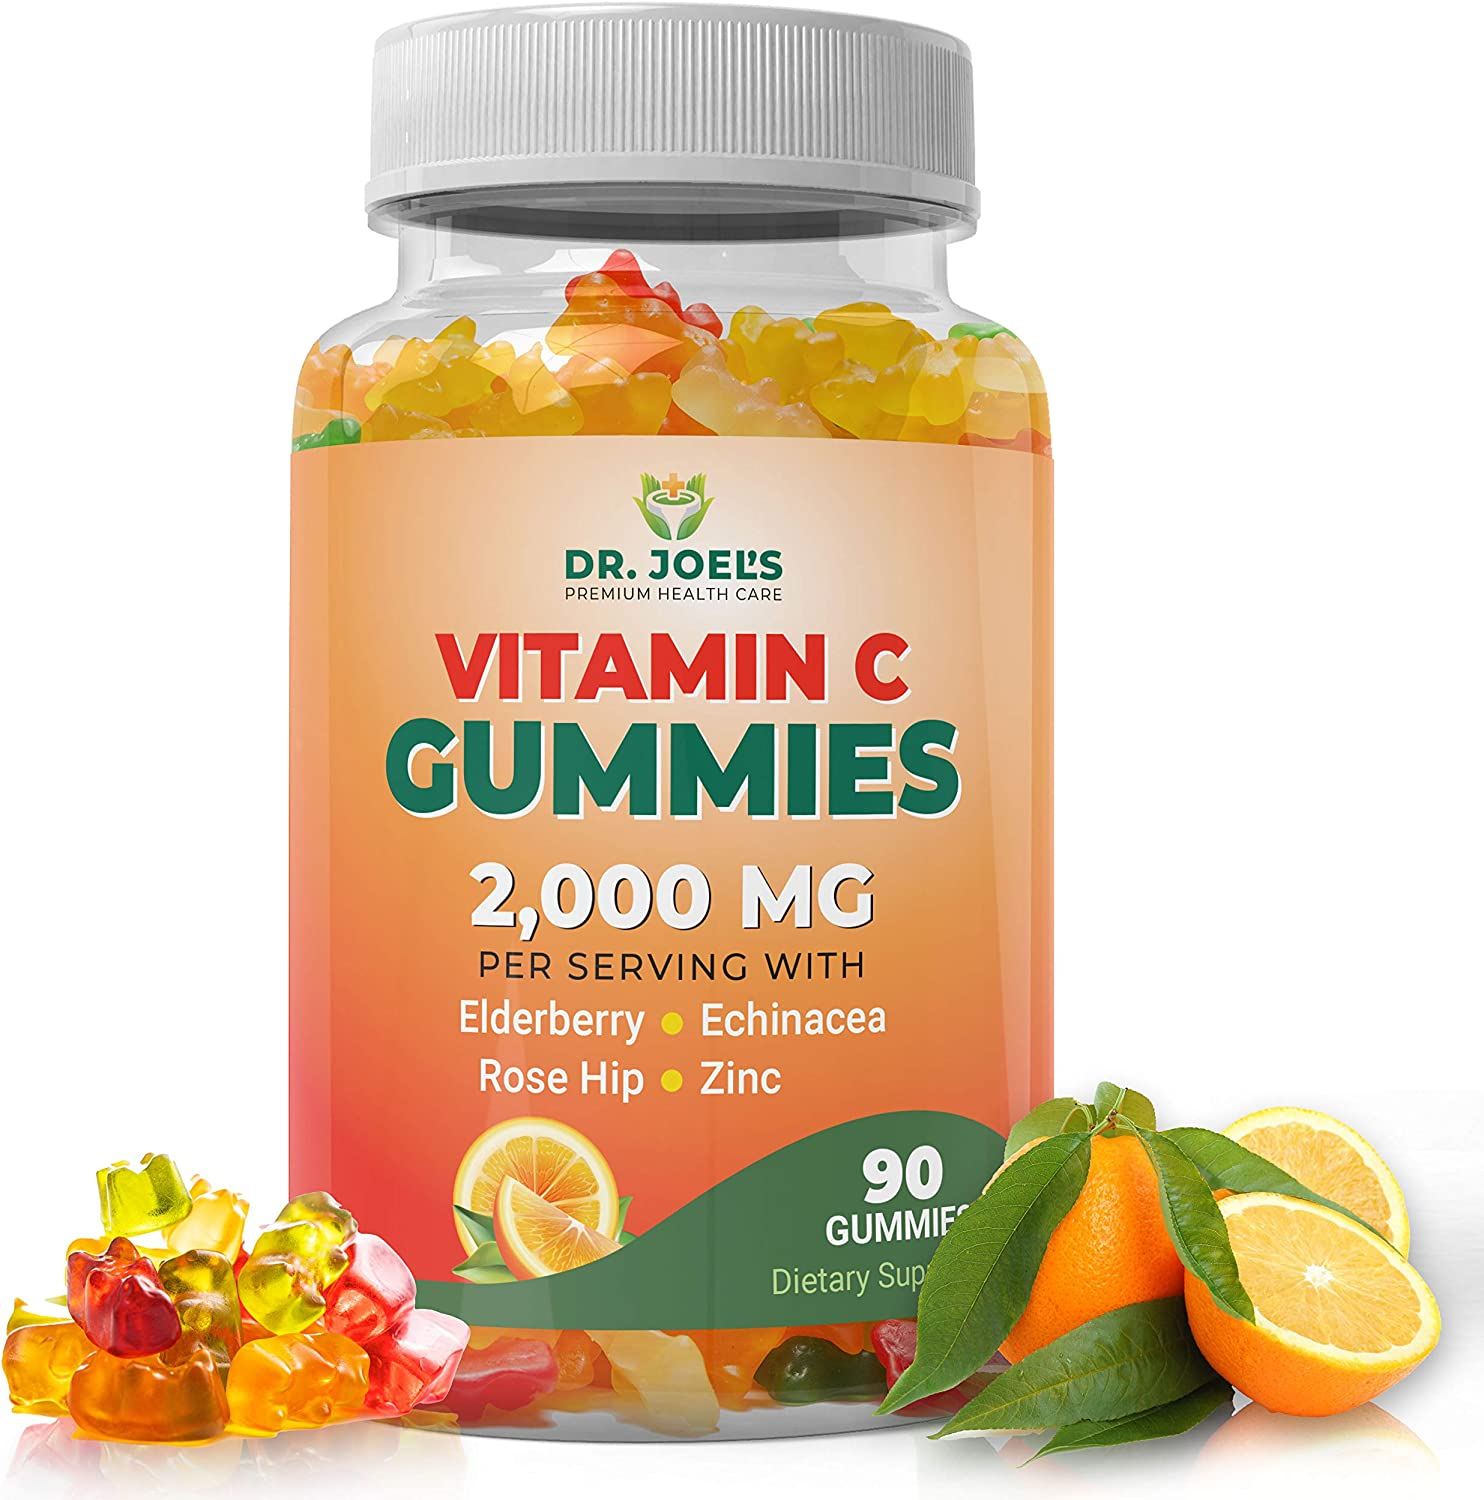 DR JOELS Vitamin C Gummies 2000 MG, Supports Immune System - Made in The USA